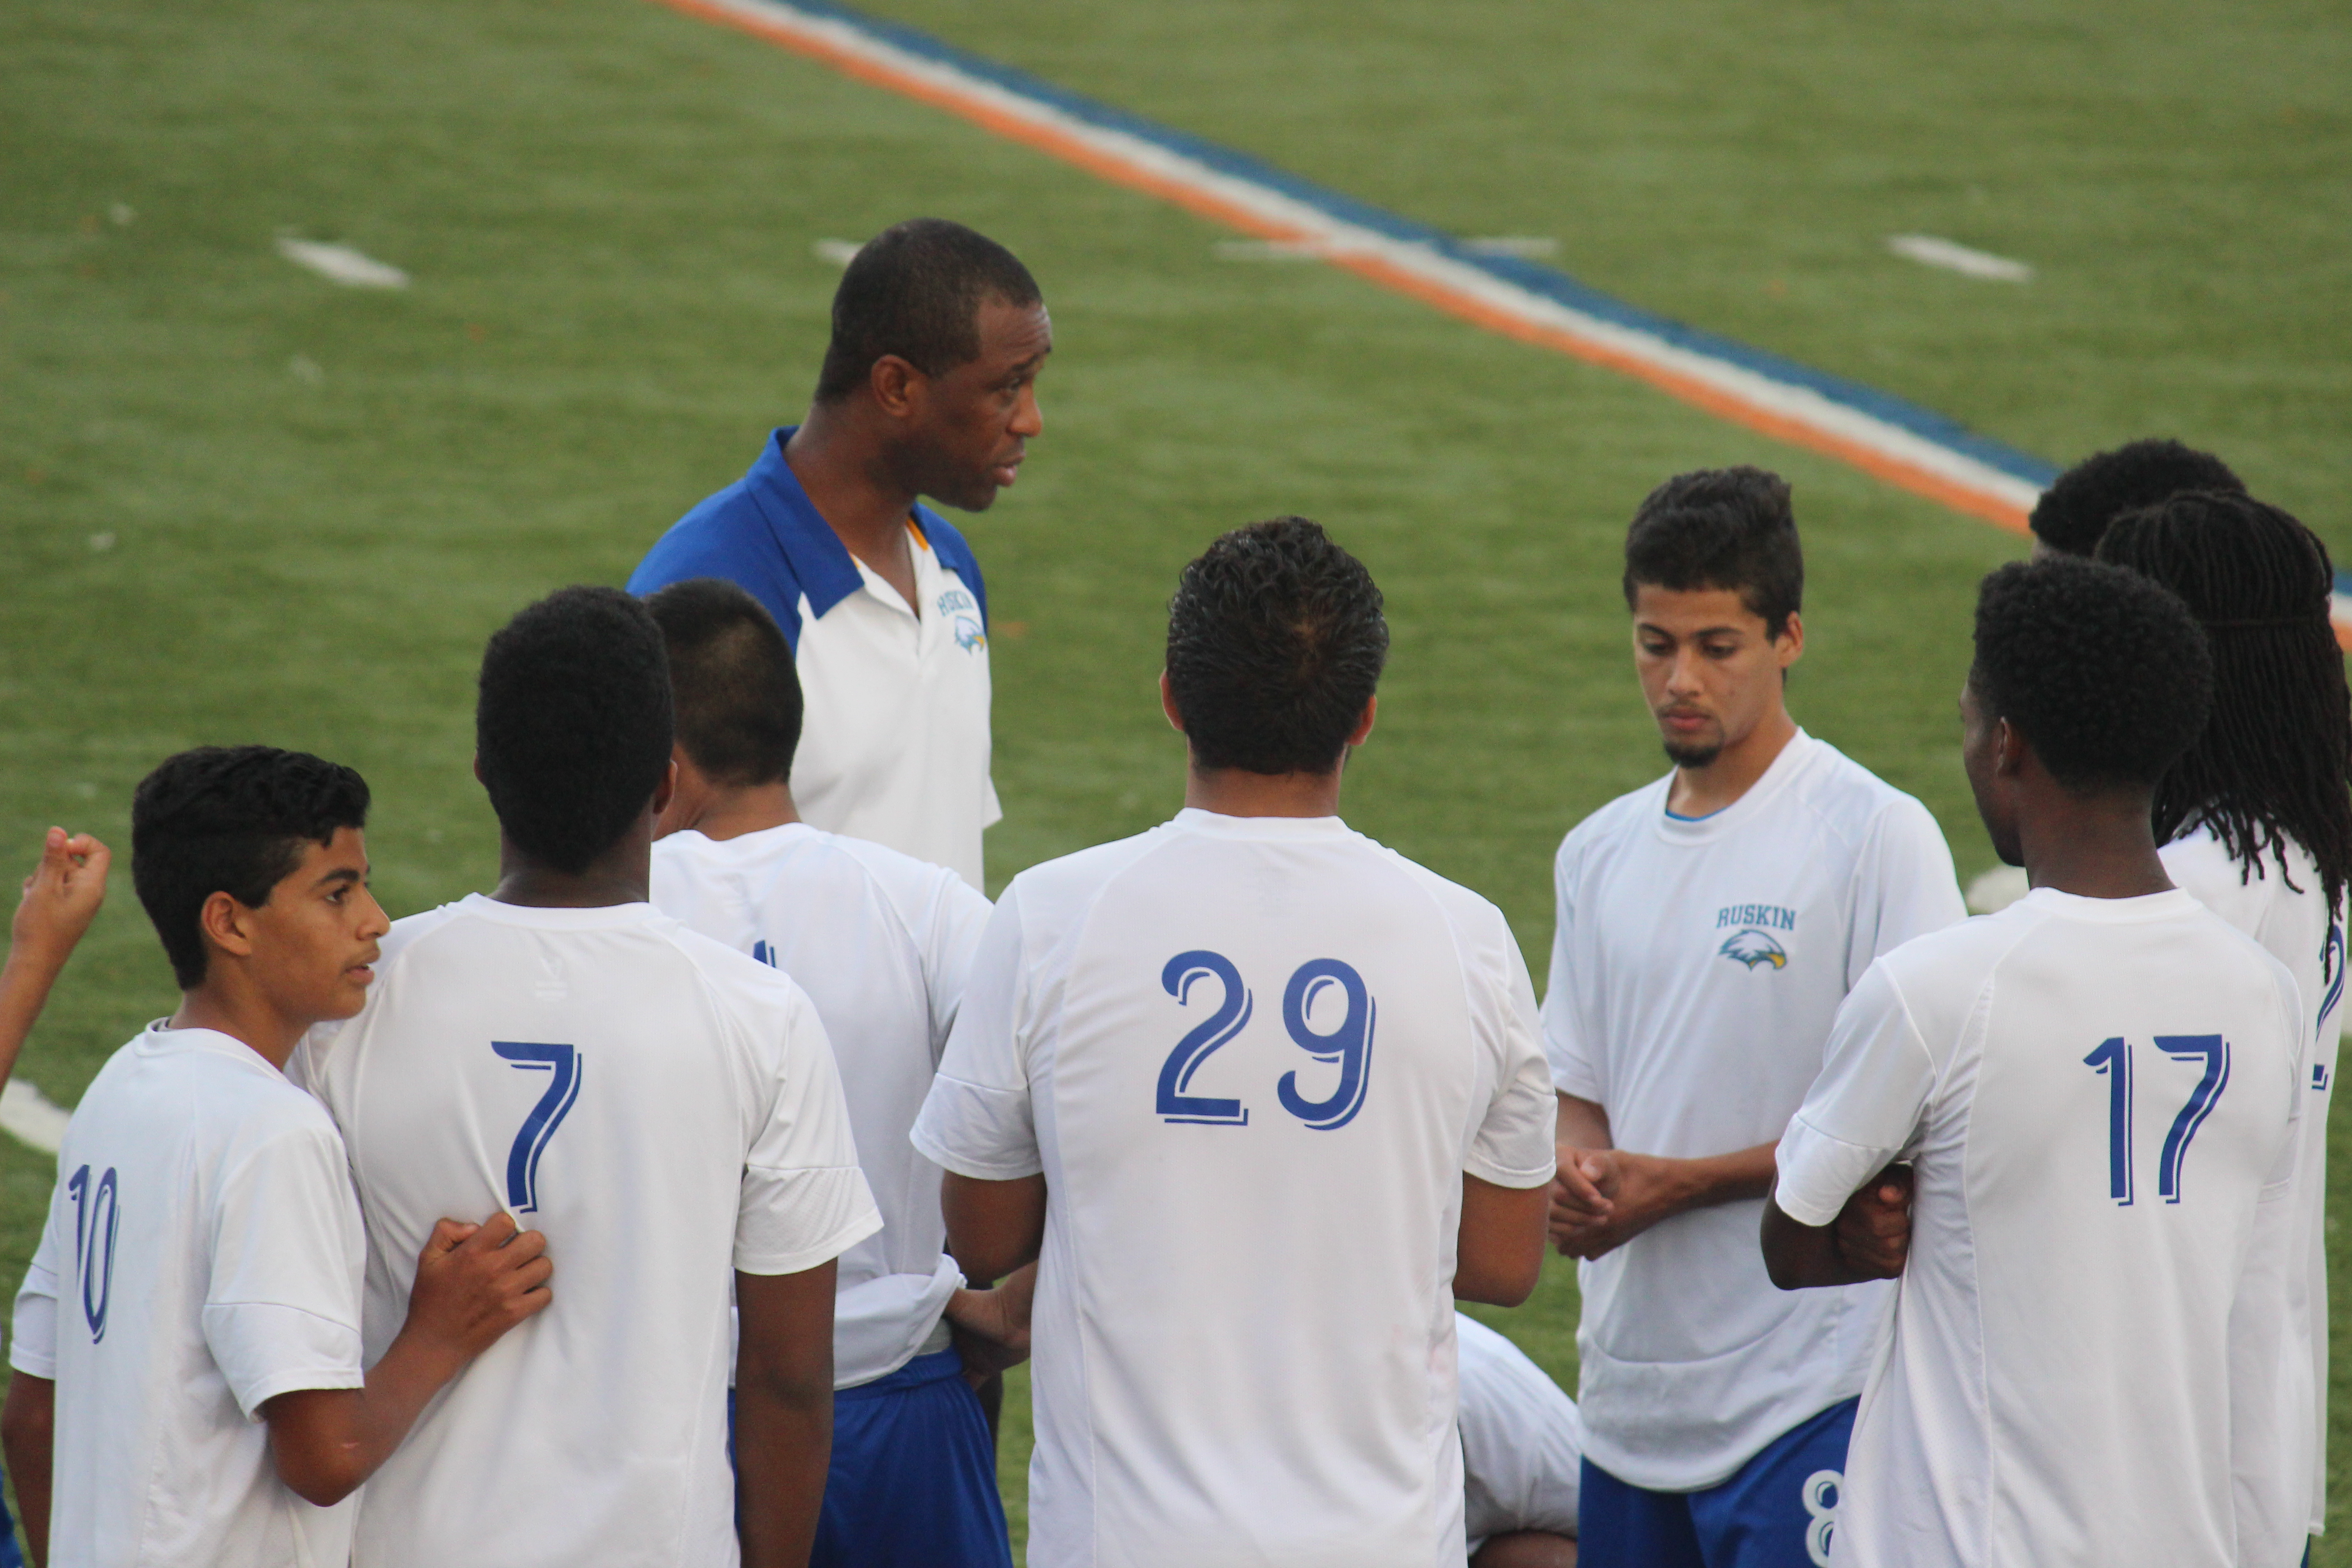 """Soaring For Success The Ruskin Eagles Boys Soccer Team gathers for a pre-game talk to pump up the boys' spirits. The team practiced countless hours to perfect their playing techniques. Those techniques come into play when the team gives it their all on the field. """"We basically go over working as a team and trying to master our team playing abilities."""" senior Robert Johnson said. Photo by Madeline Harris."""